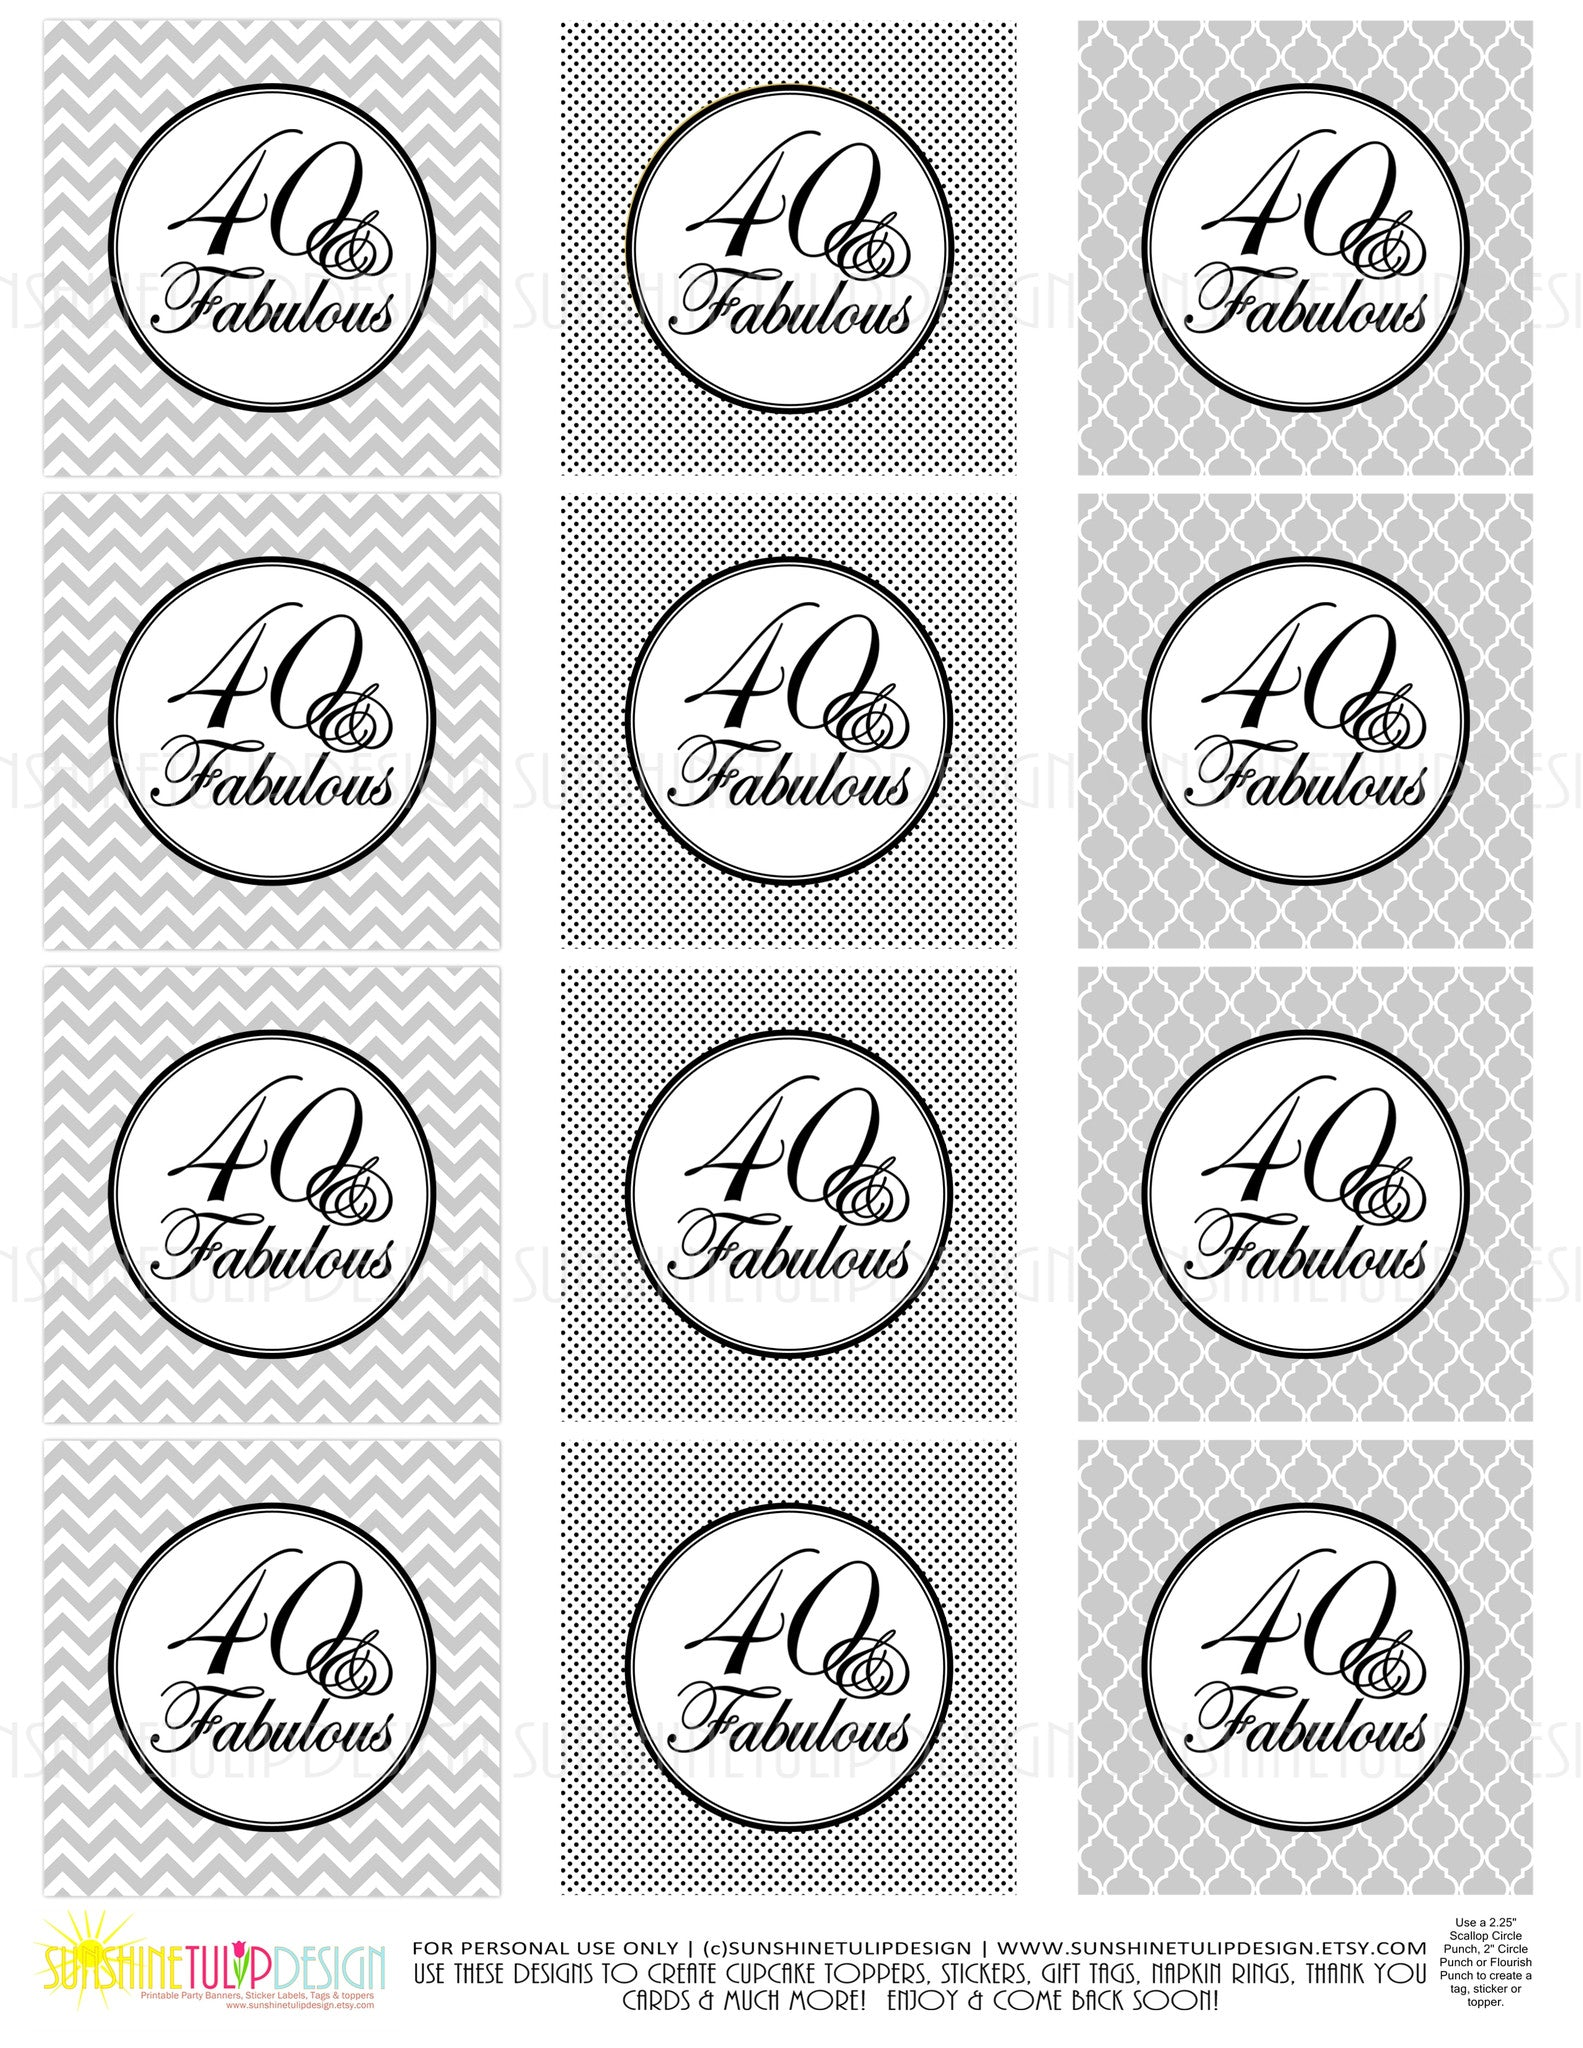 image about Printable Sticker Labels known as Printable 40 and Fantastic Black Grey Birthday Cupcake Toppers, Sticker Labels Social gathering Like Tags